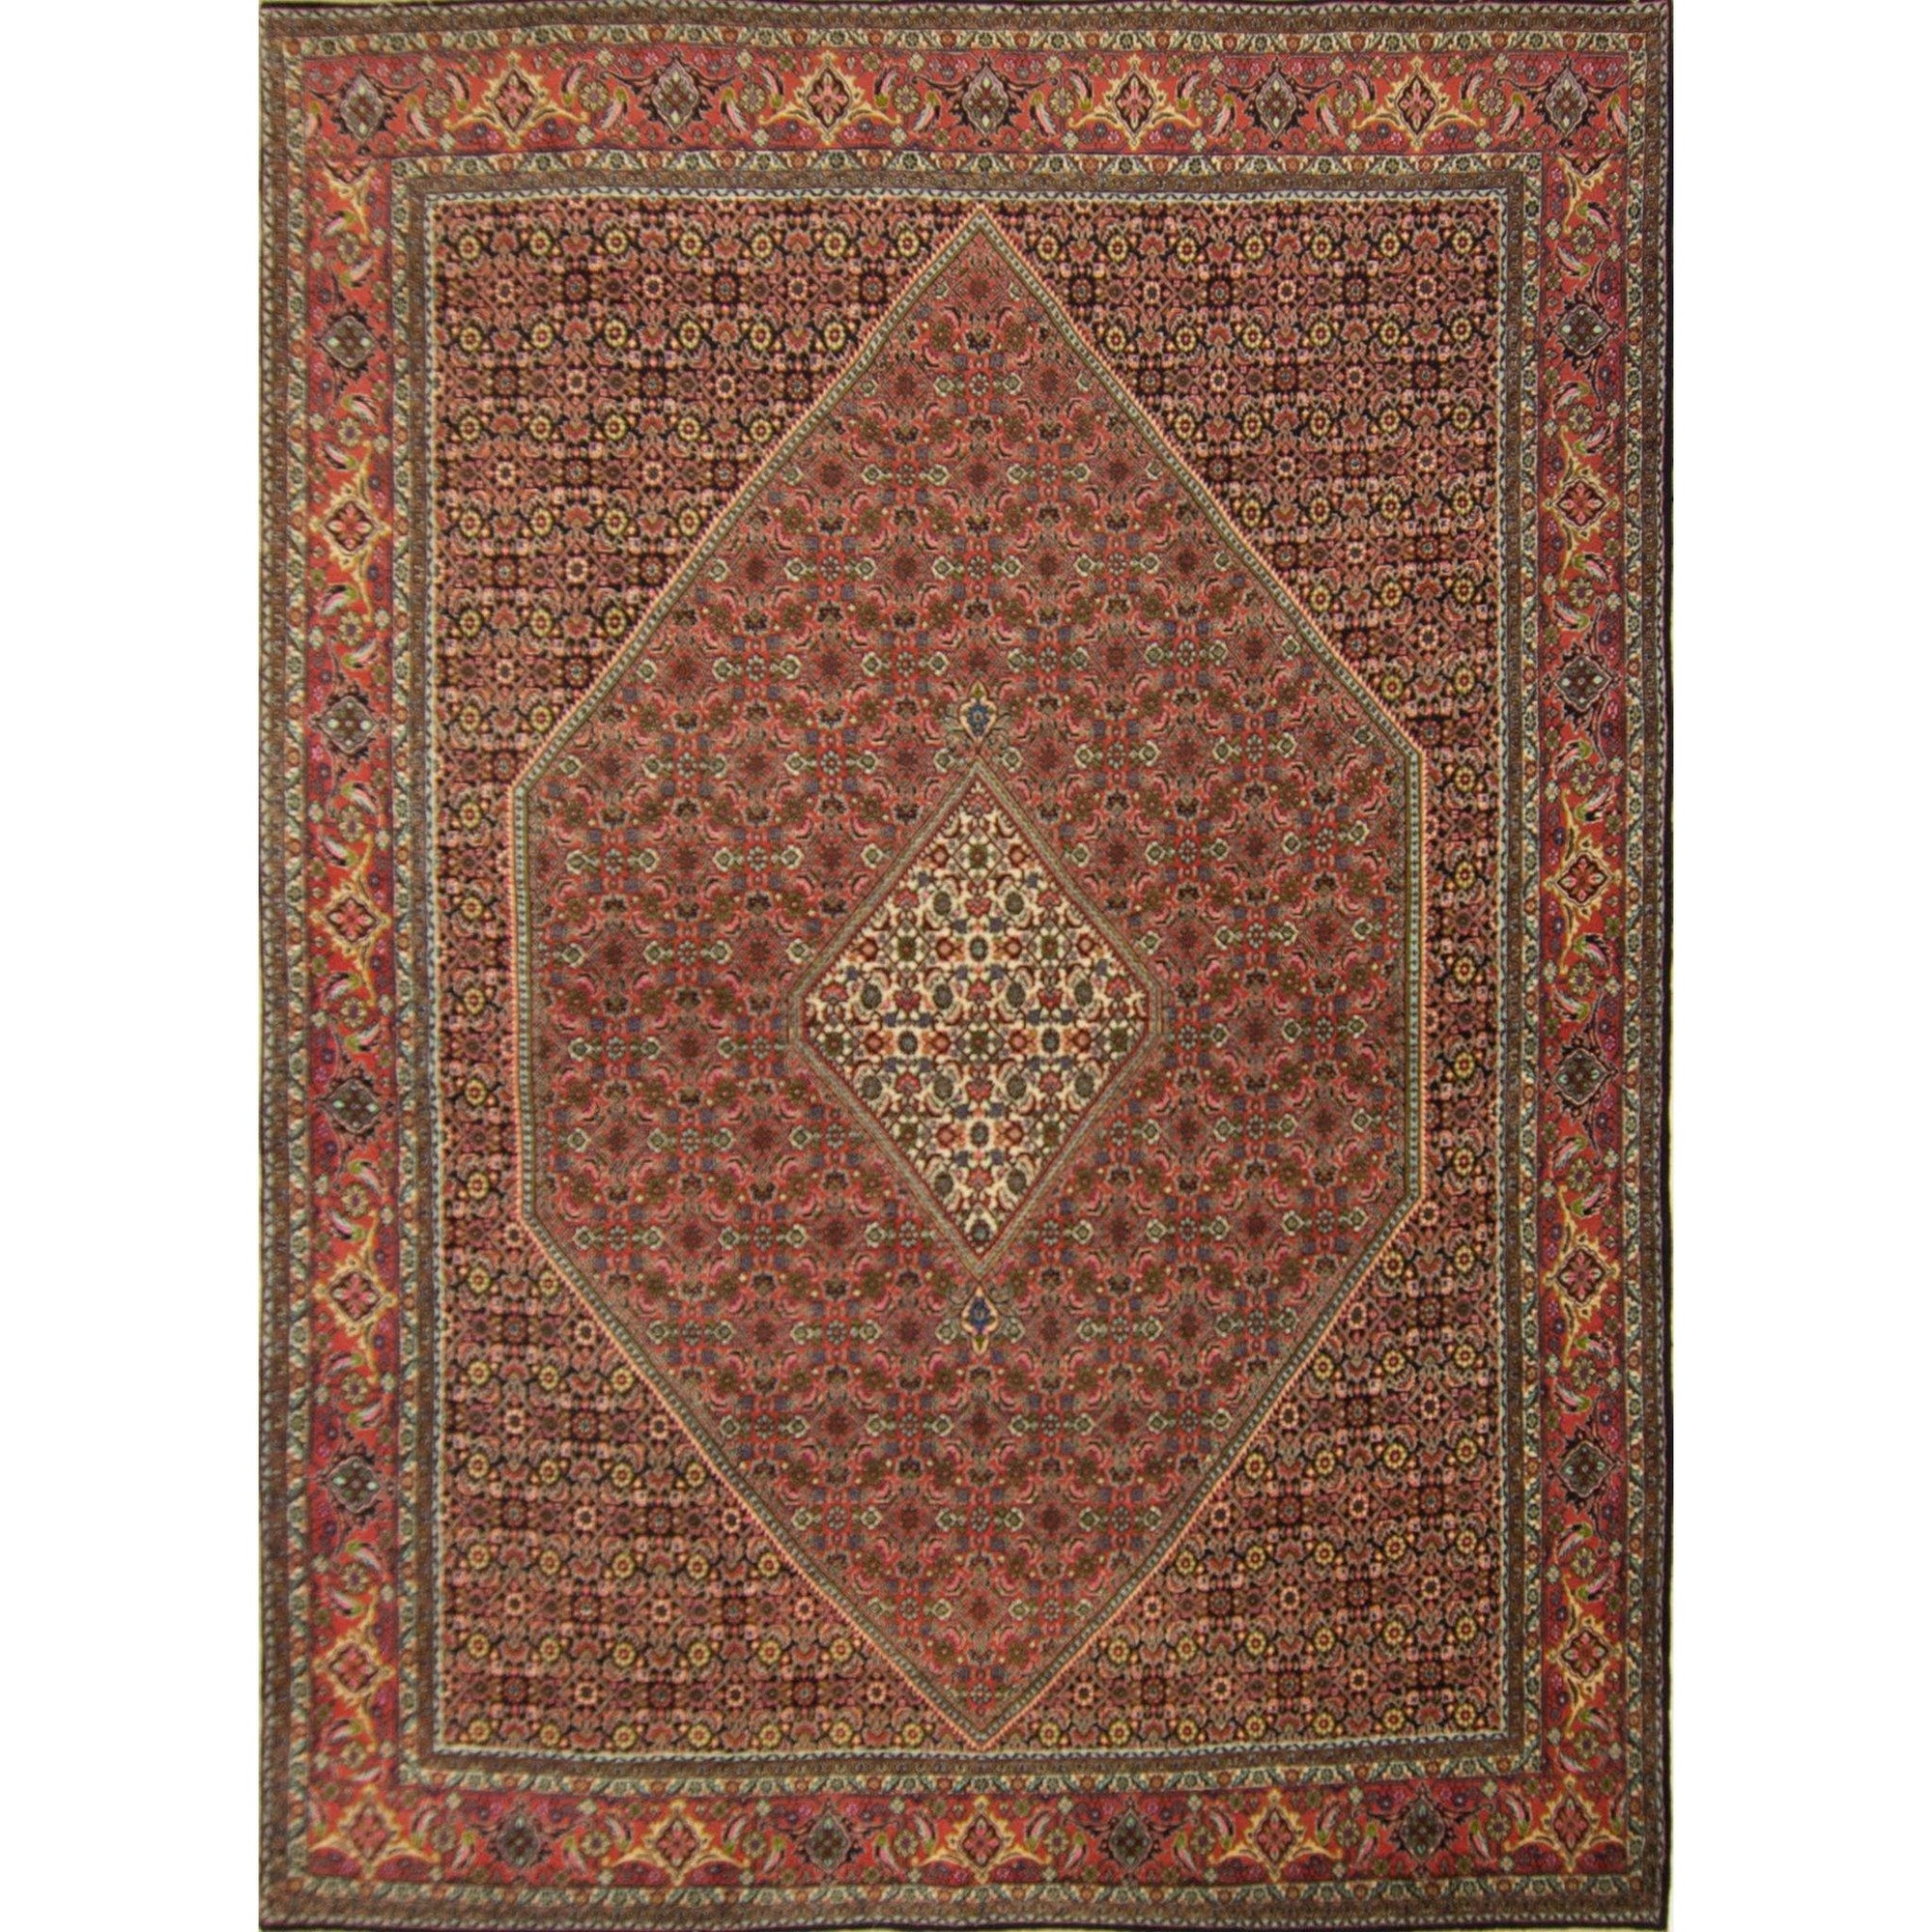 Super Fine Hand-knotted Persian Wool Bijar Rug 252cm x 352cm Persian-Rug | House-of-Haghi | NewMarket | Auckland | NZ | Handmade Persian Rugs | Hand Knotted Persian Rugs